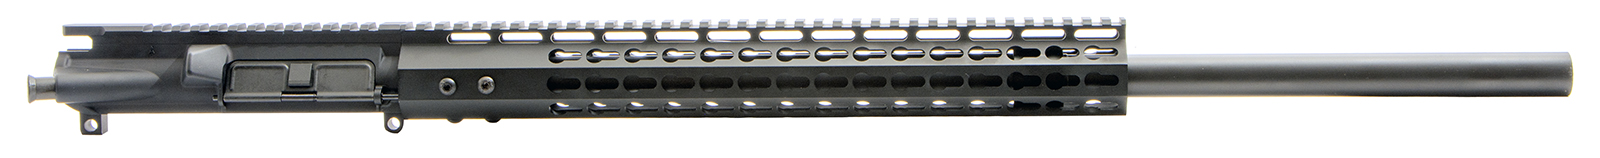 ar-15-upper-assembly-24-223-5-56-bull-barrel-no-fluting-15-cbc-arms-keymod-gen-2-ar-15-rail